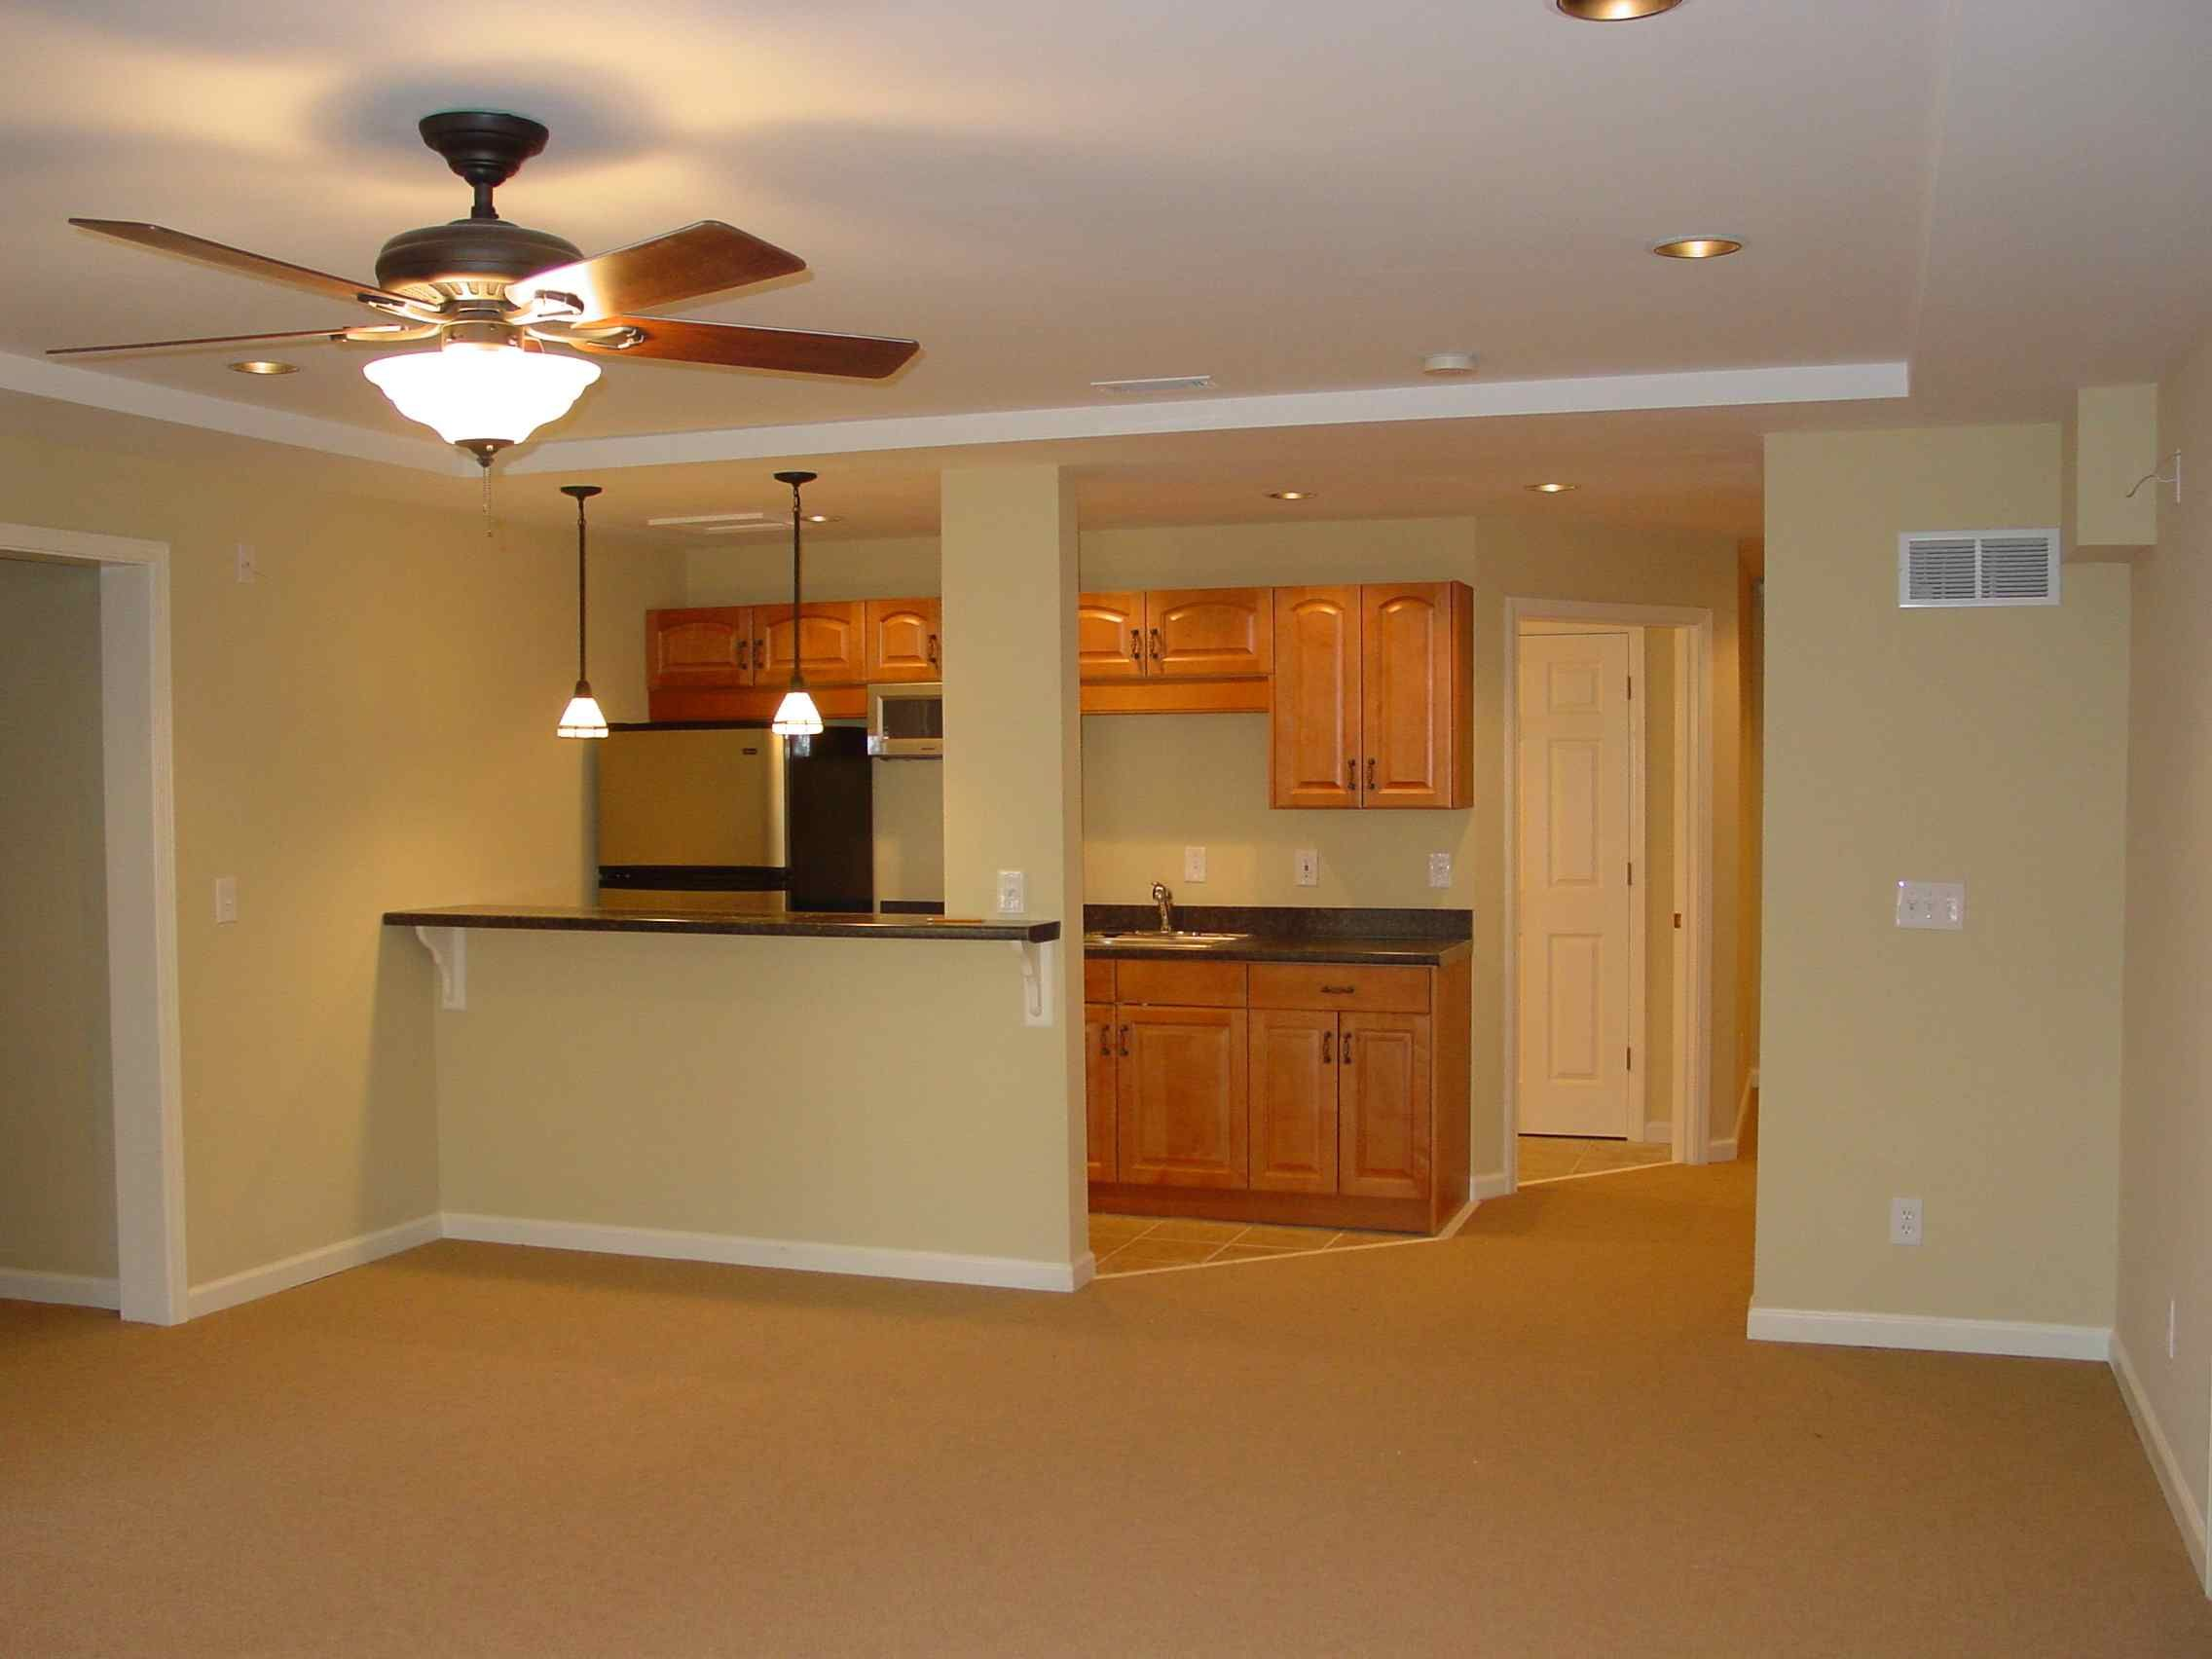 Basement remodeling ideas basement kitchenette ideas for Studio apartment renovation ideas